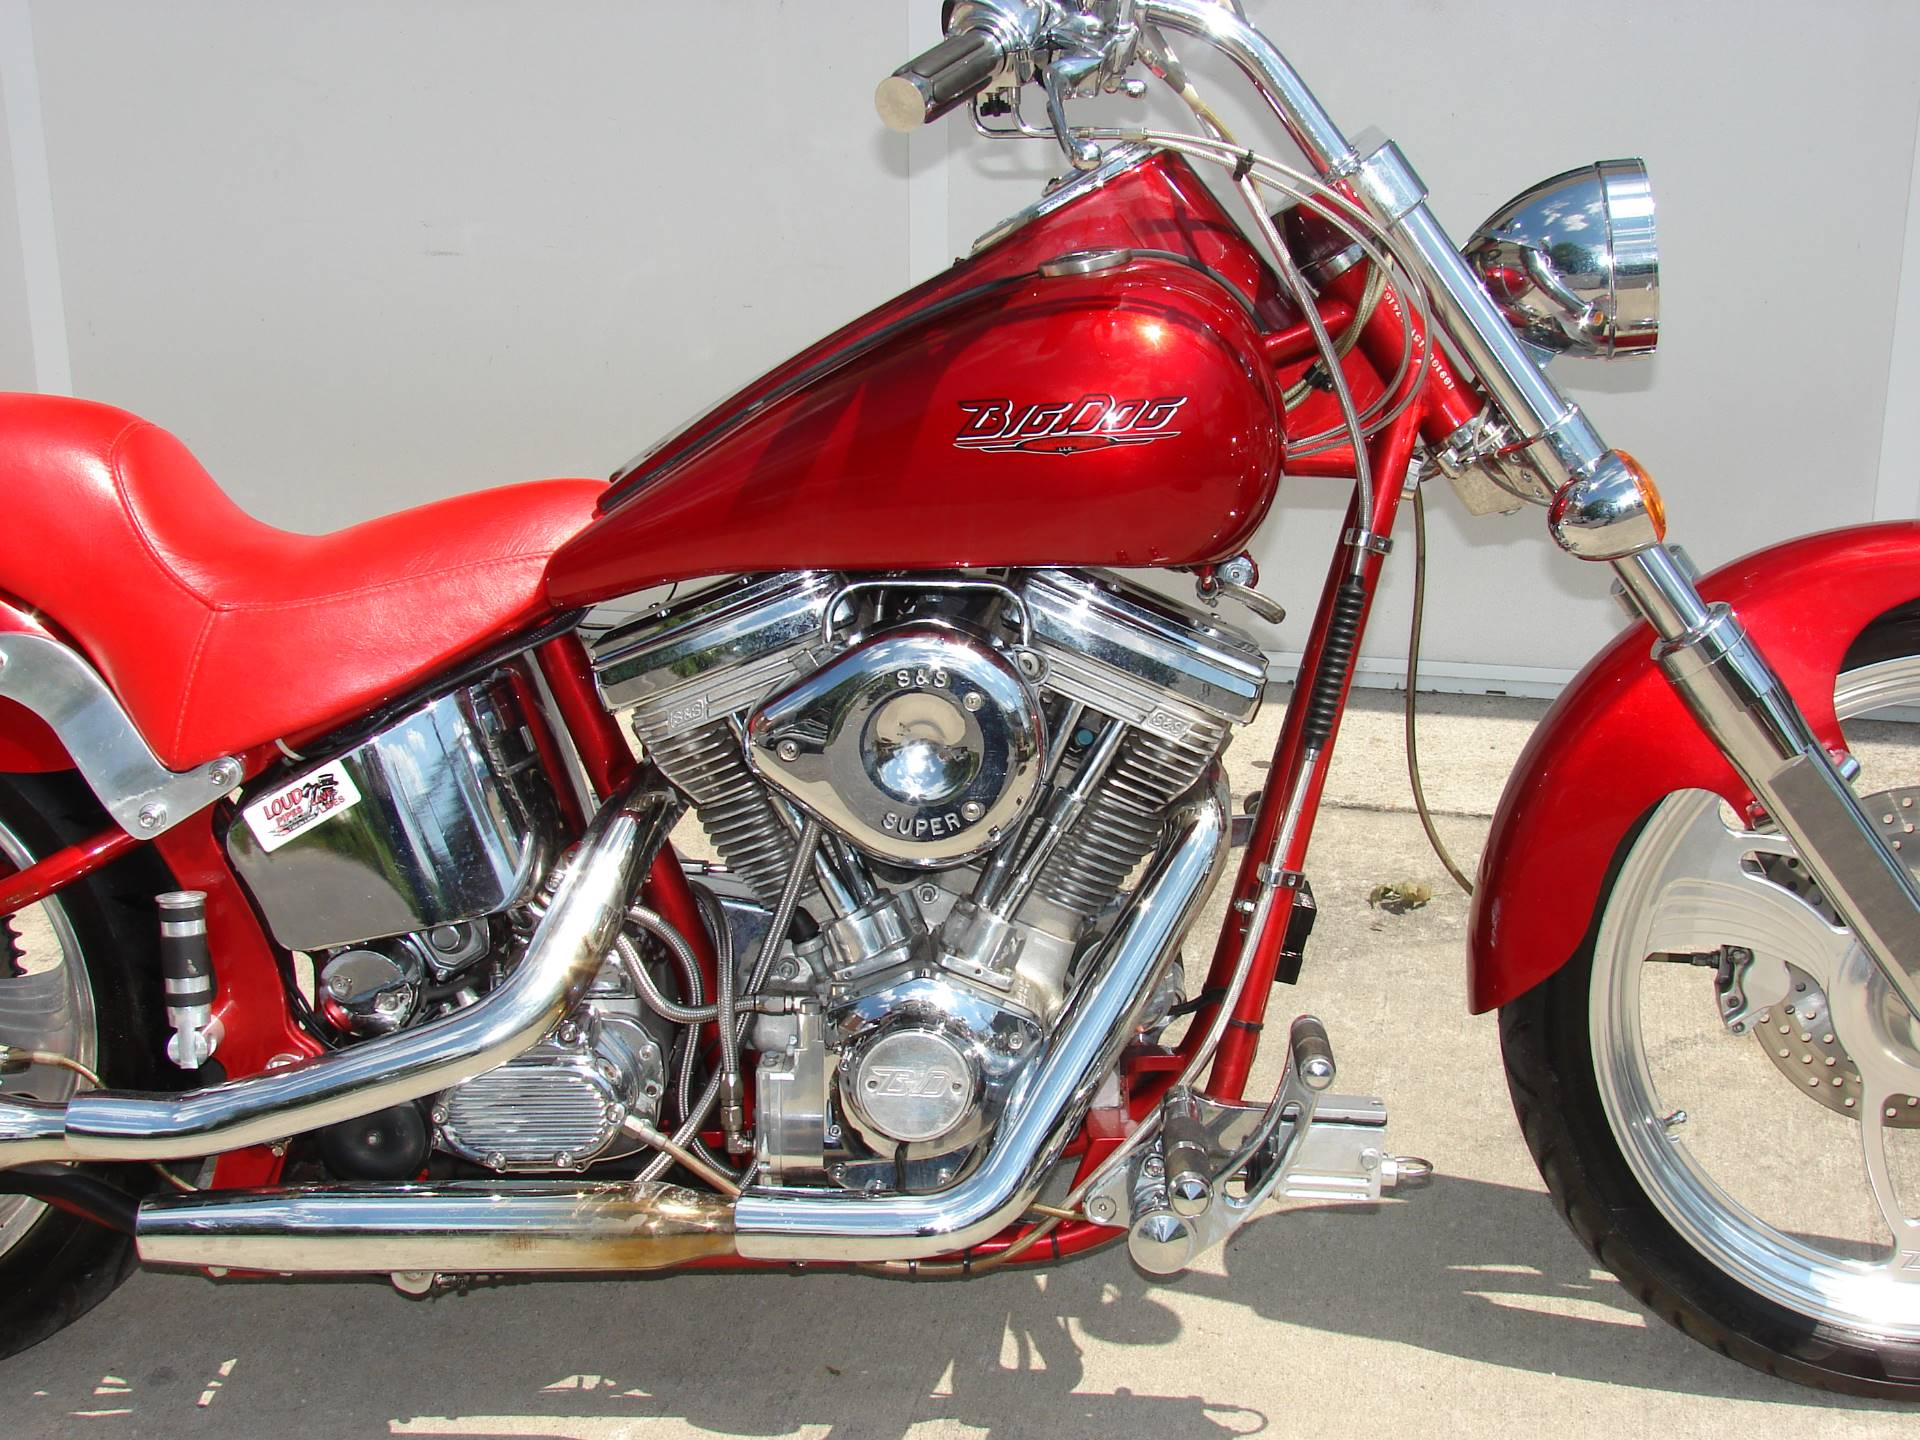 2002 Big Dog Motorcycles Bull Dog  -  (w/ Candy Apple Red Metallic Paint) in Williamstown, New Jersey